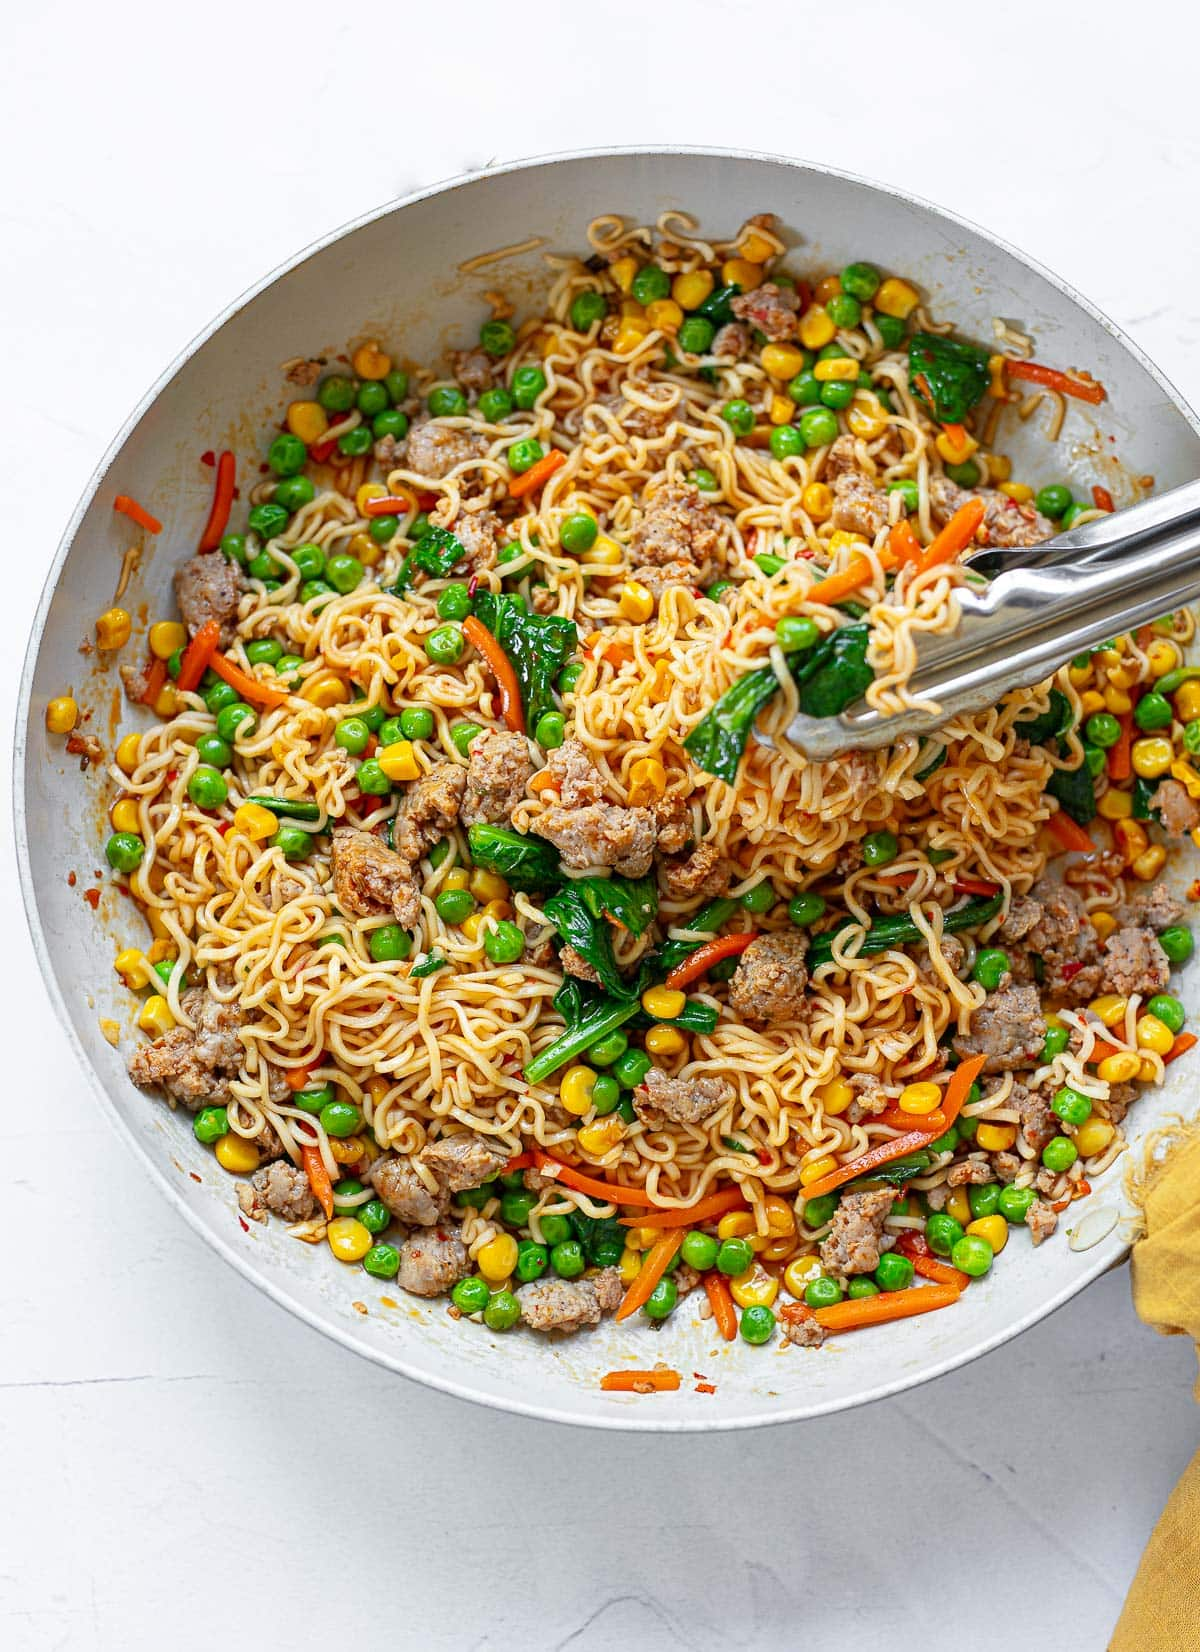 A white nonstick pan with gold serving spoons filled with ramen noodle stir-fry mixed with peas, carrots, corn and spinach.